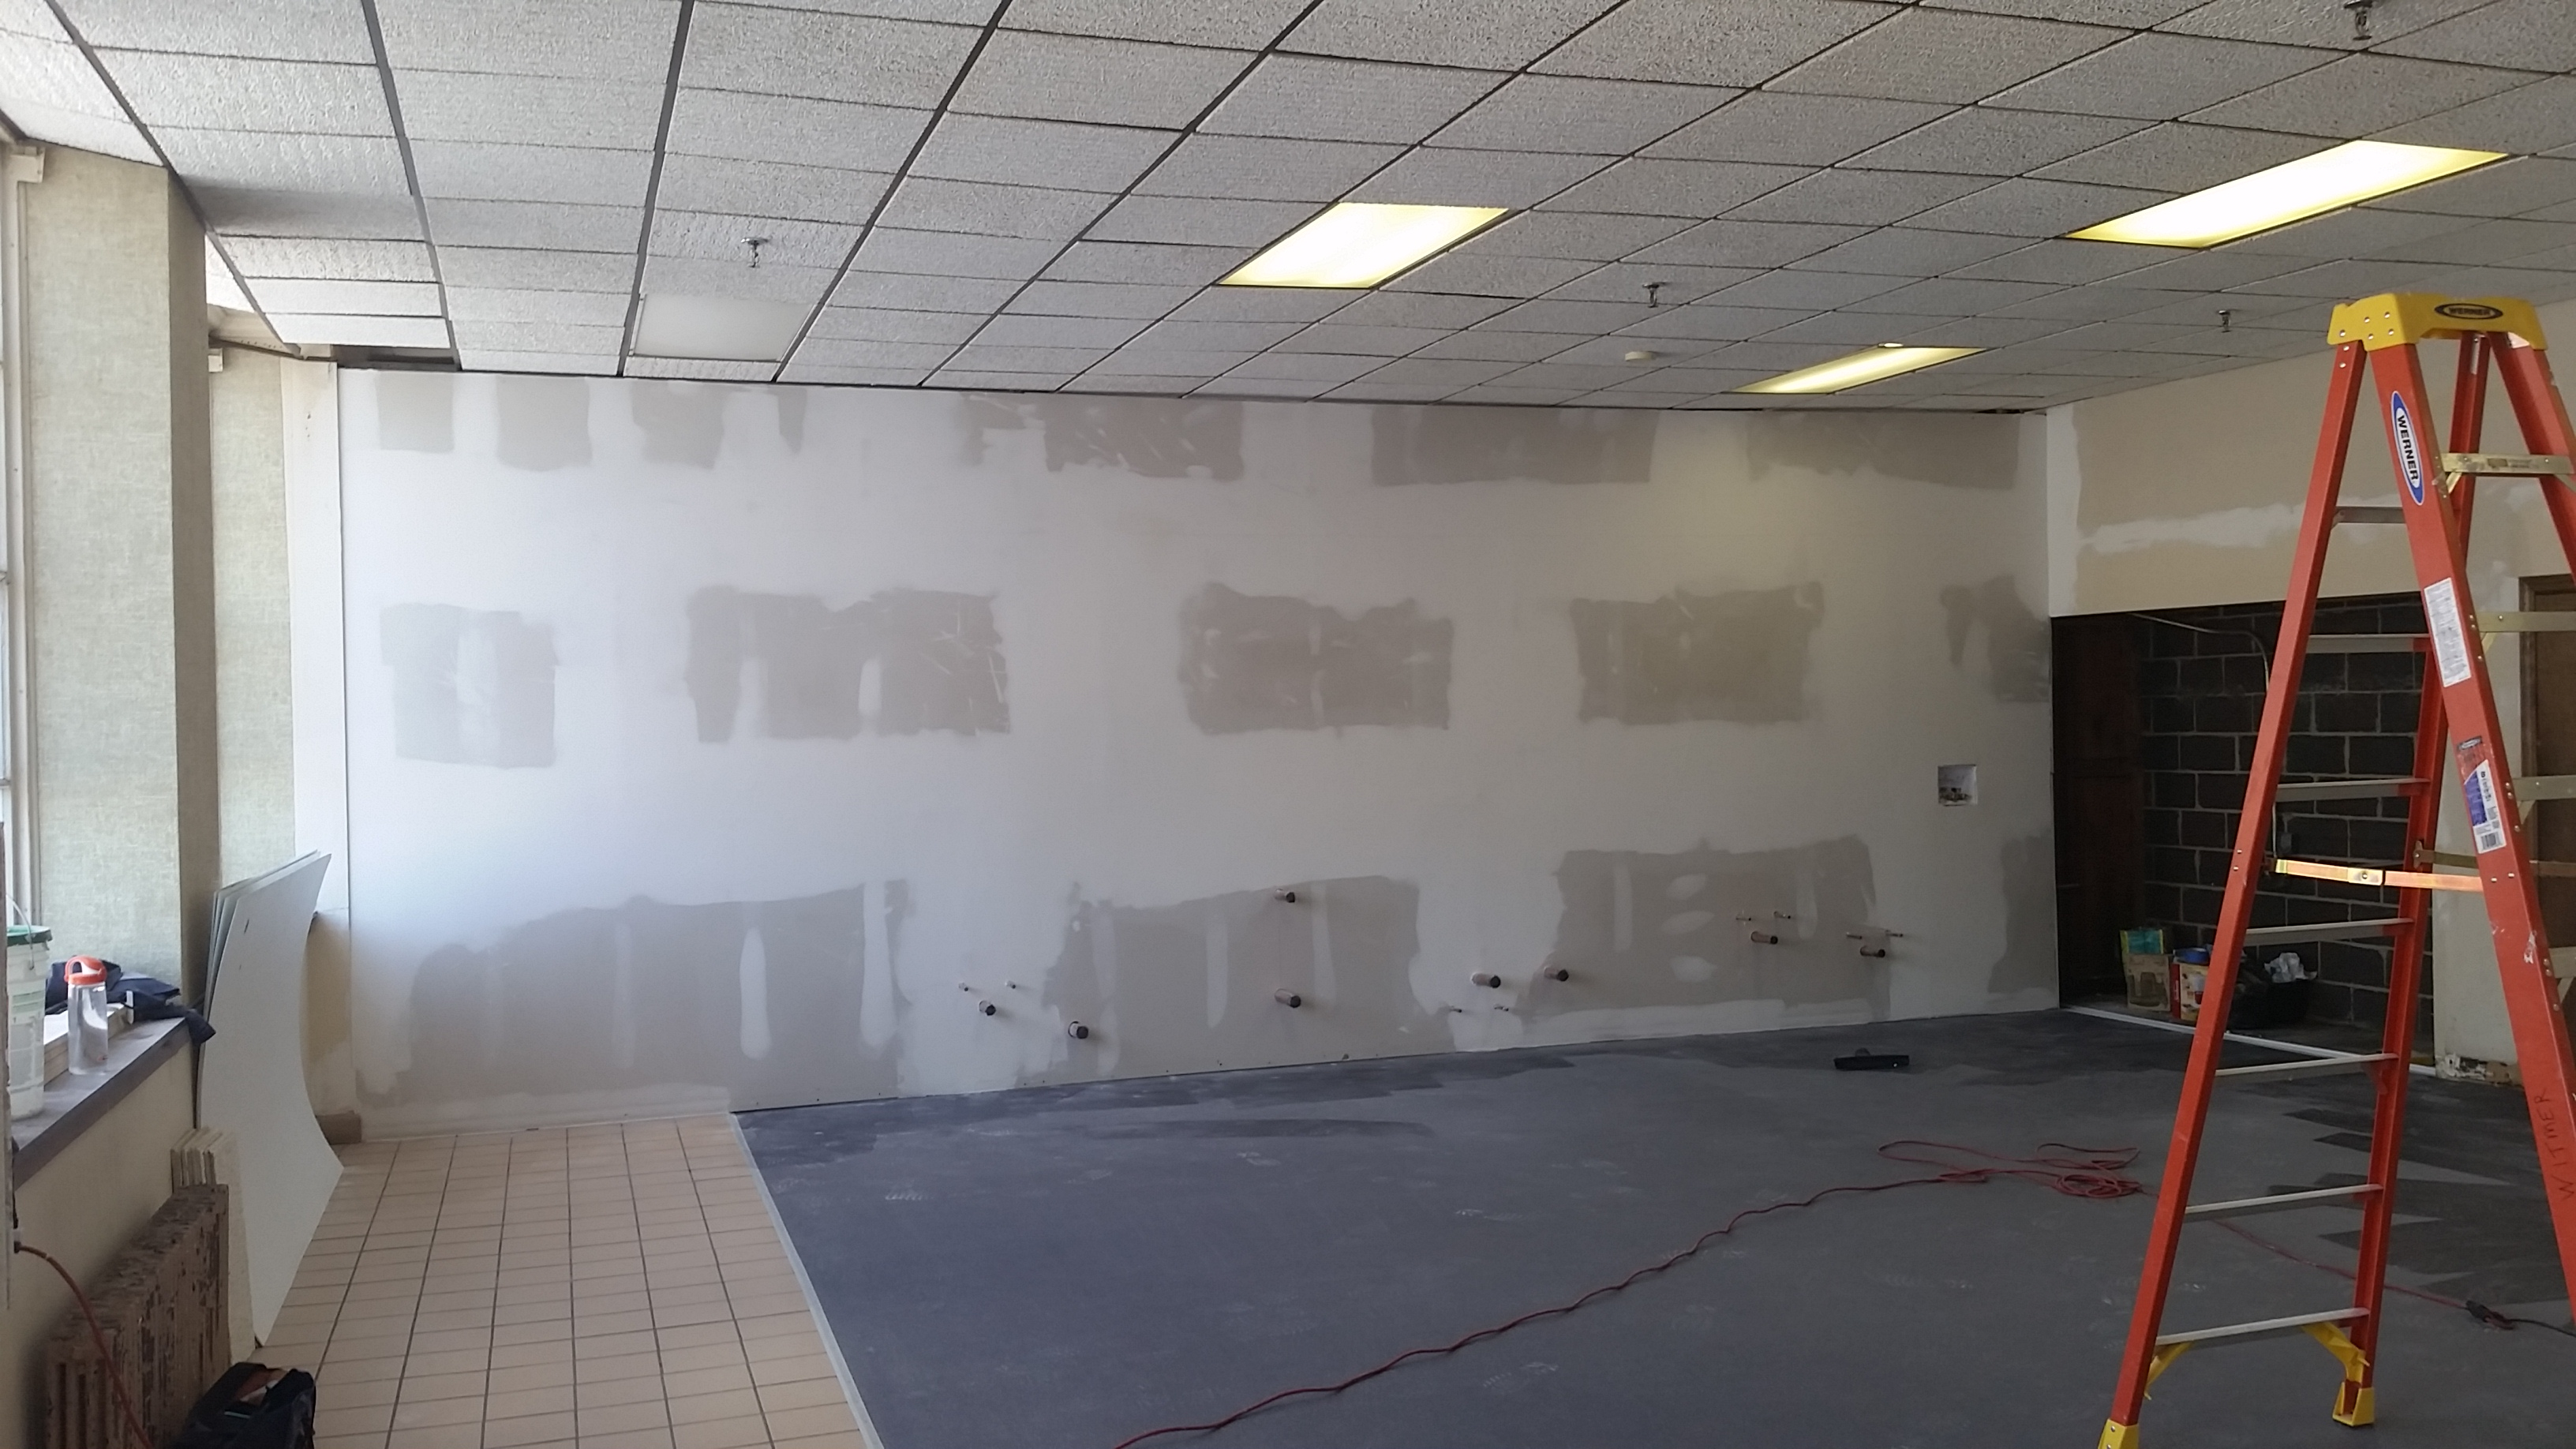 Dividing Wall Is In, Ceiling Tiles Are Up, And Initial Plumbing Is Almost Complete.